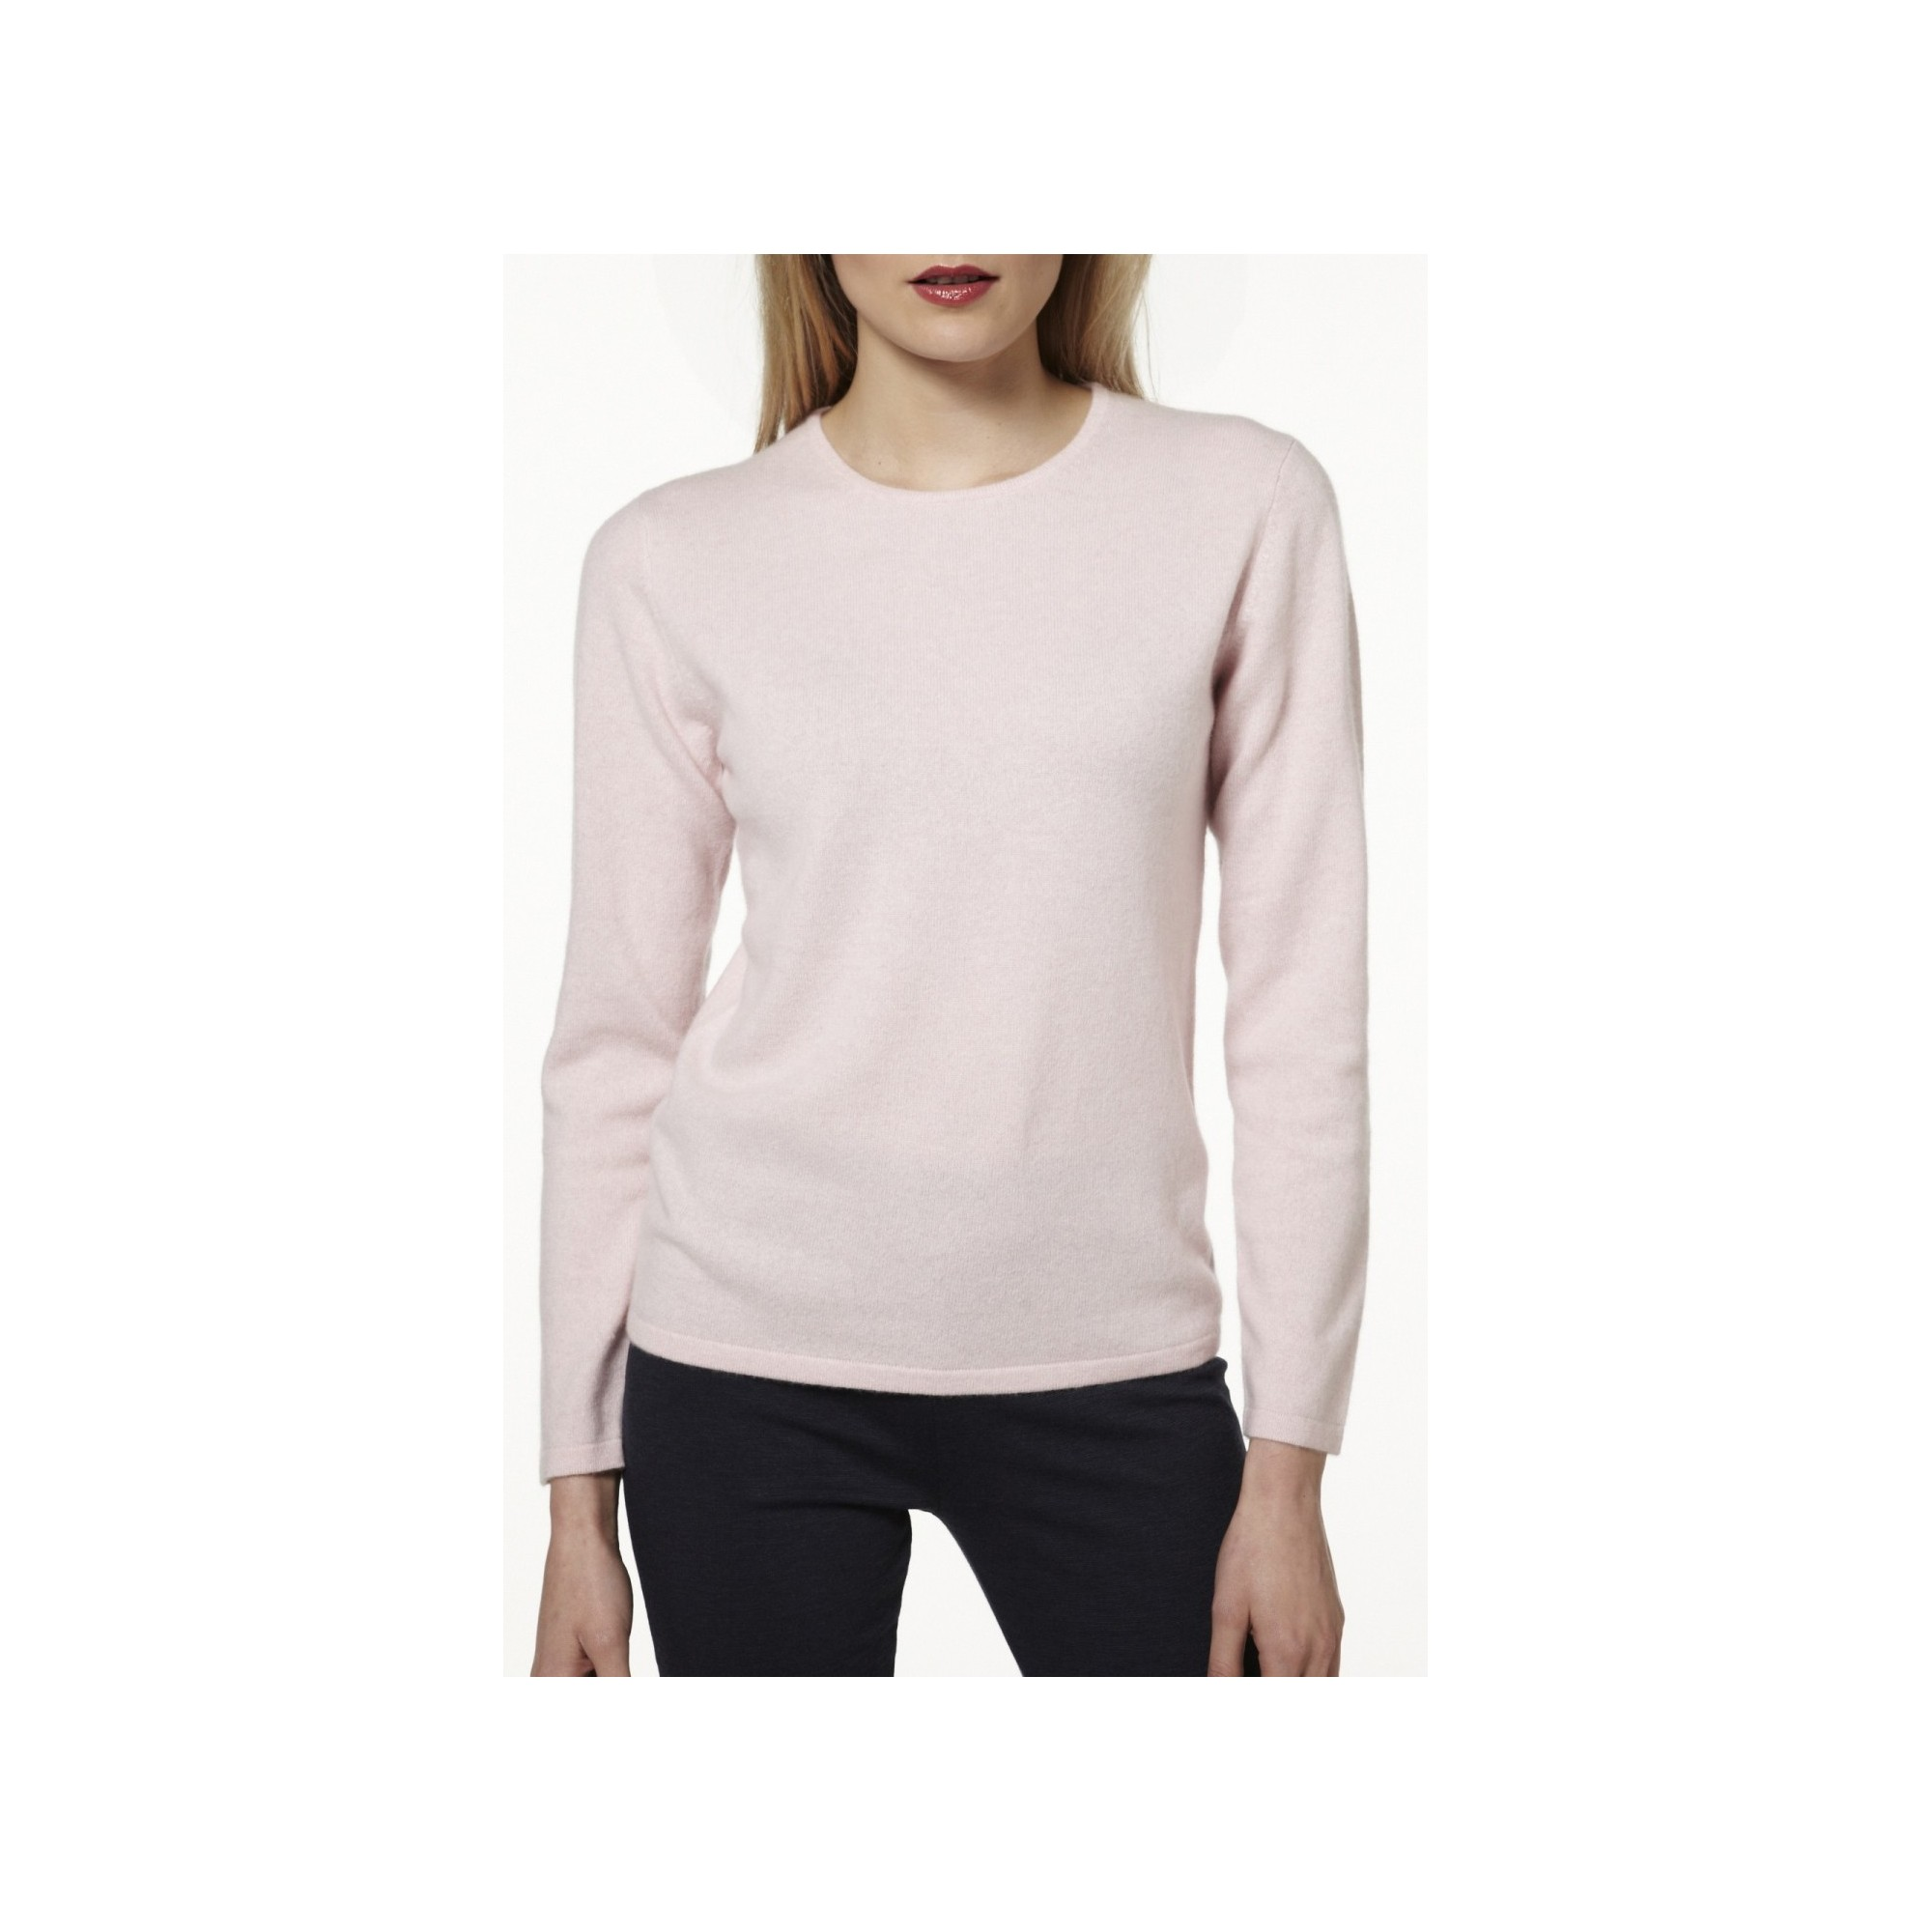 Women's Crew Neck Sweaters. Showing 48 of results that match your query. Search Product Result. Product - Women's Crew Neck Cable Sweater. Product Image. Price Product - Women's Loose Fluffy Pullover Jumper Sweater Crew Neck Batwing .